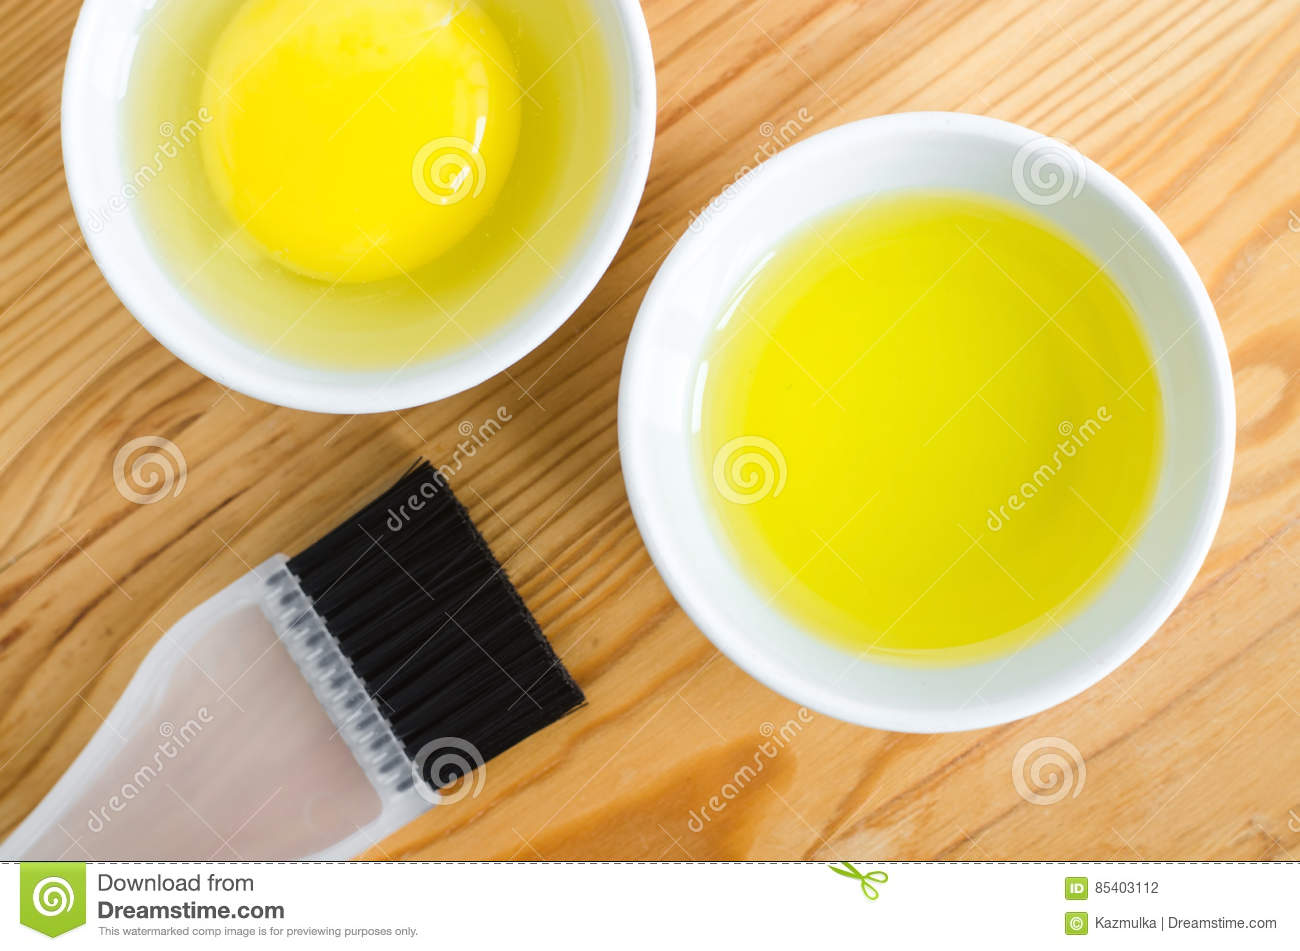 Olive oil and raw egg in a small ceramic bowls for preparing homemade spa face and hair masks. Ingredients for diy cosmetics.